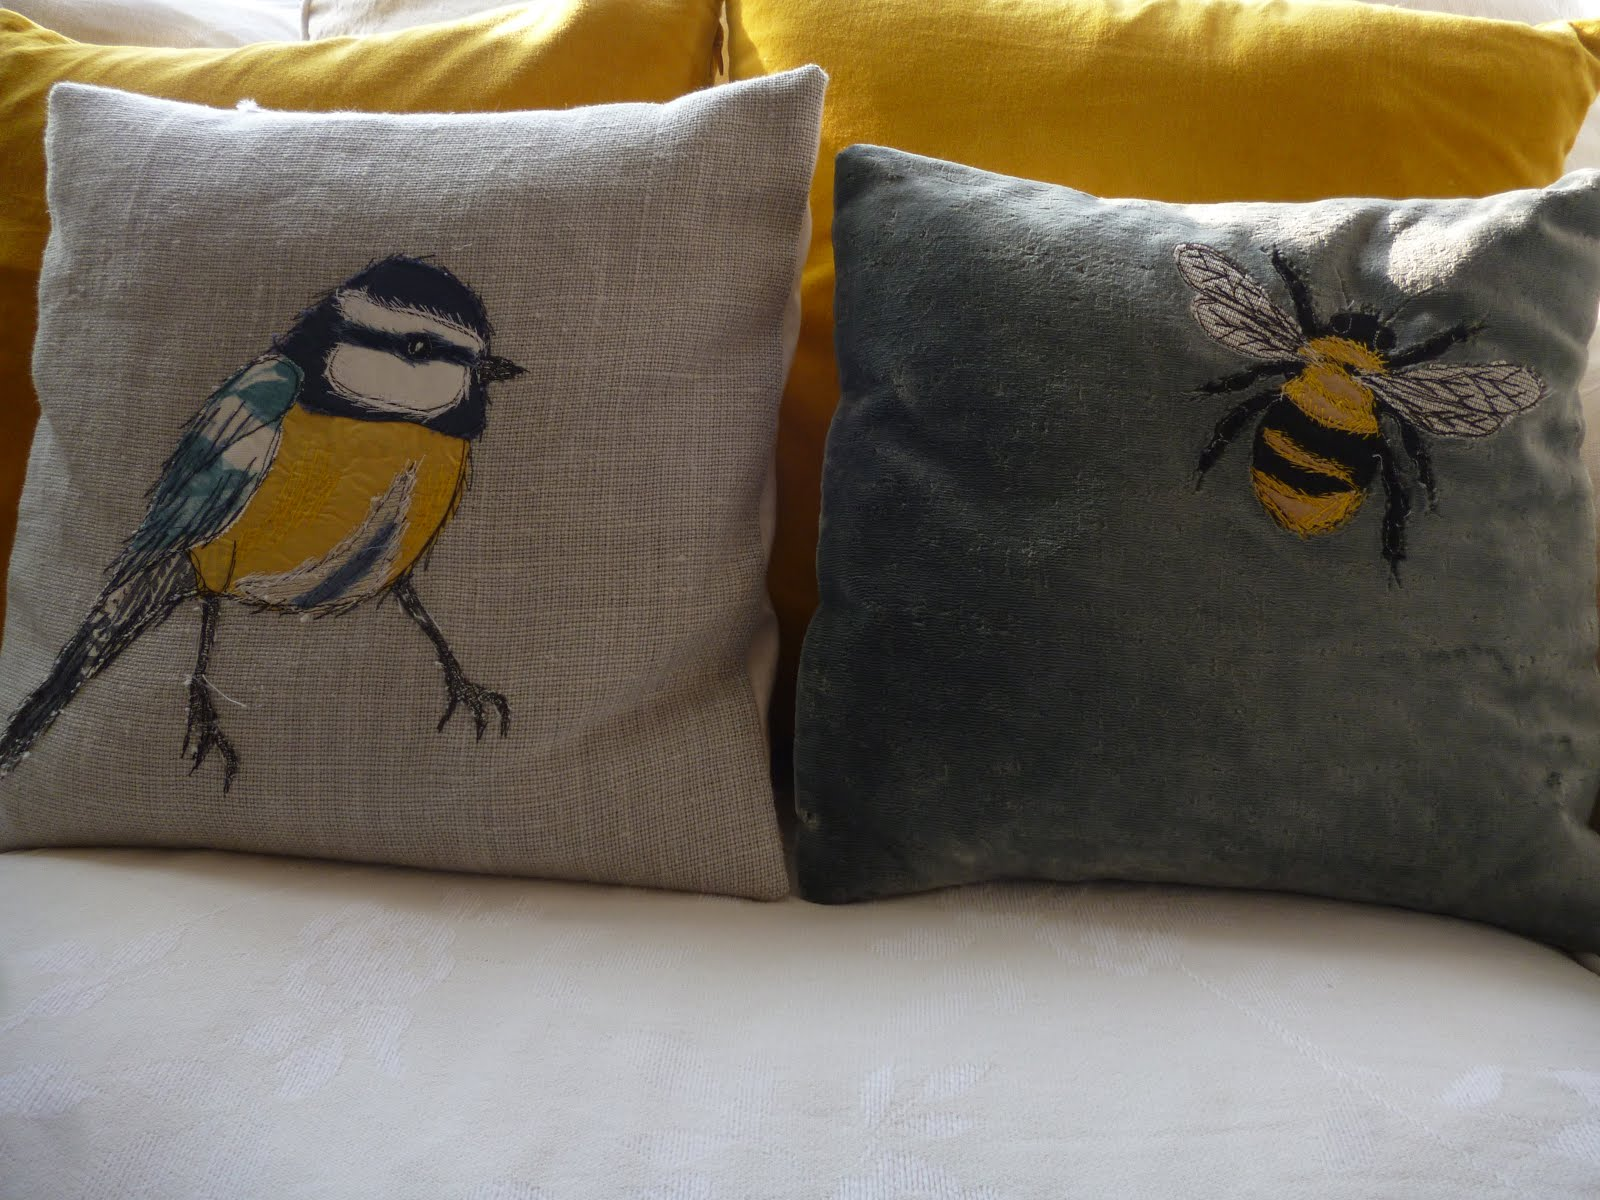 Cushions by Tanya Williamson